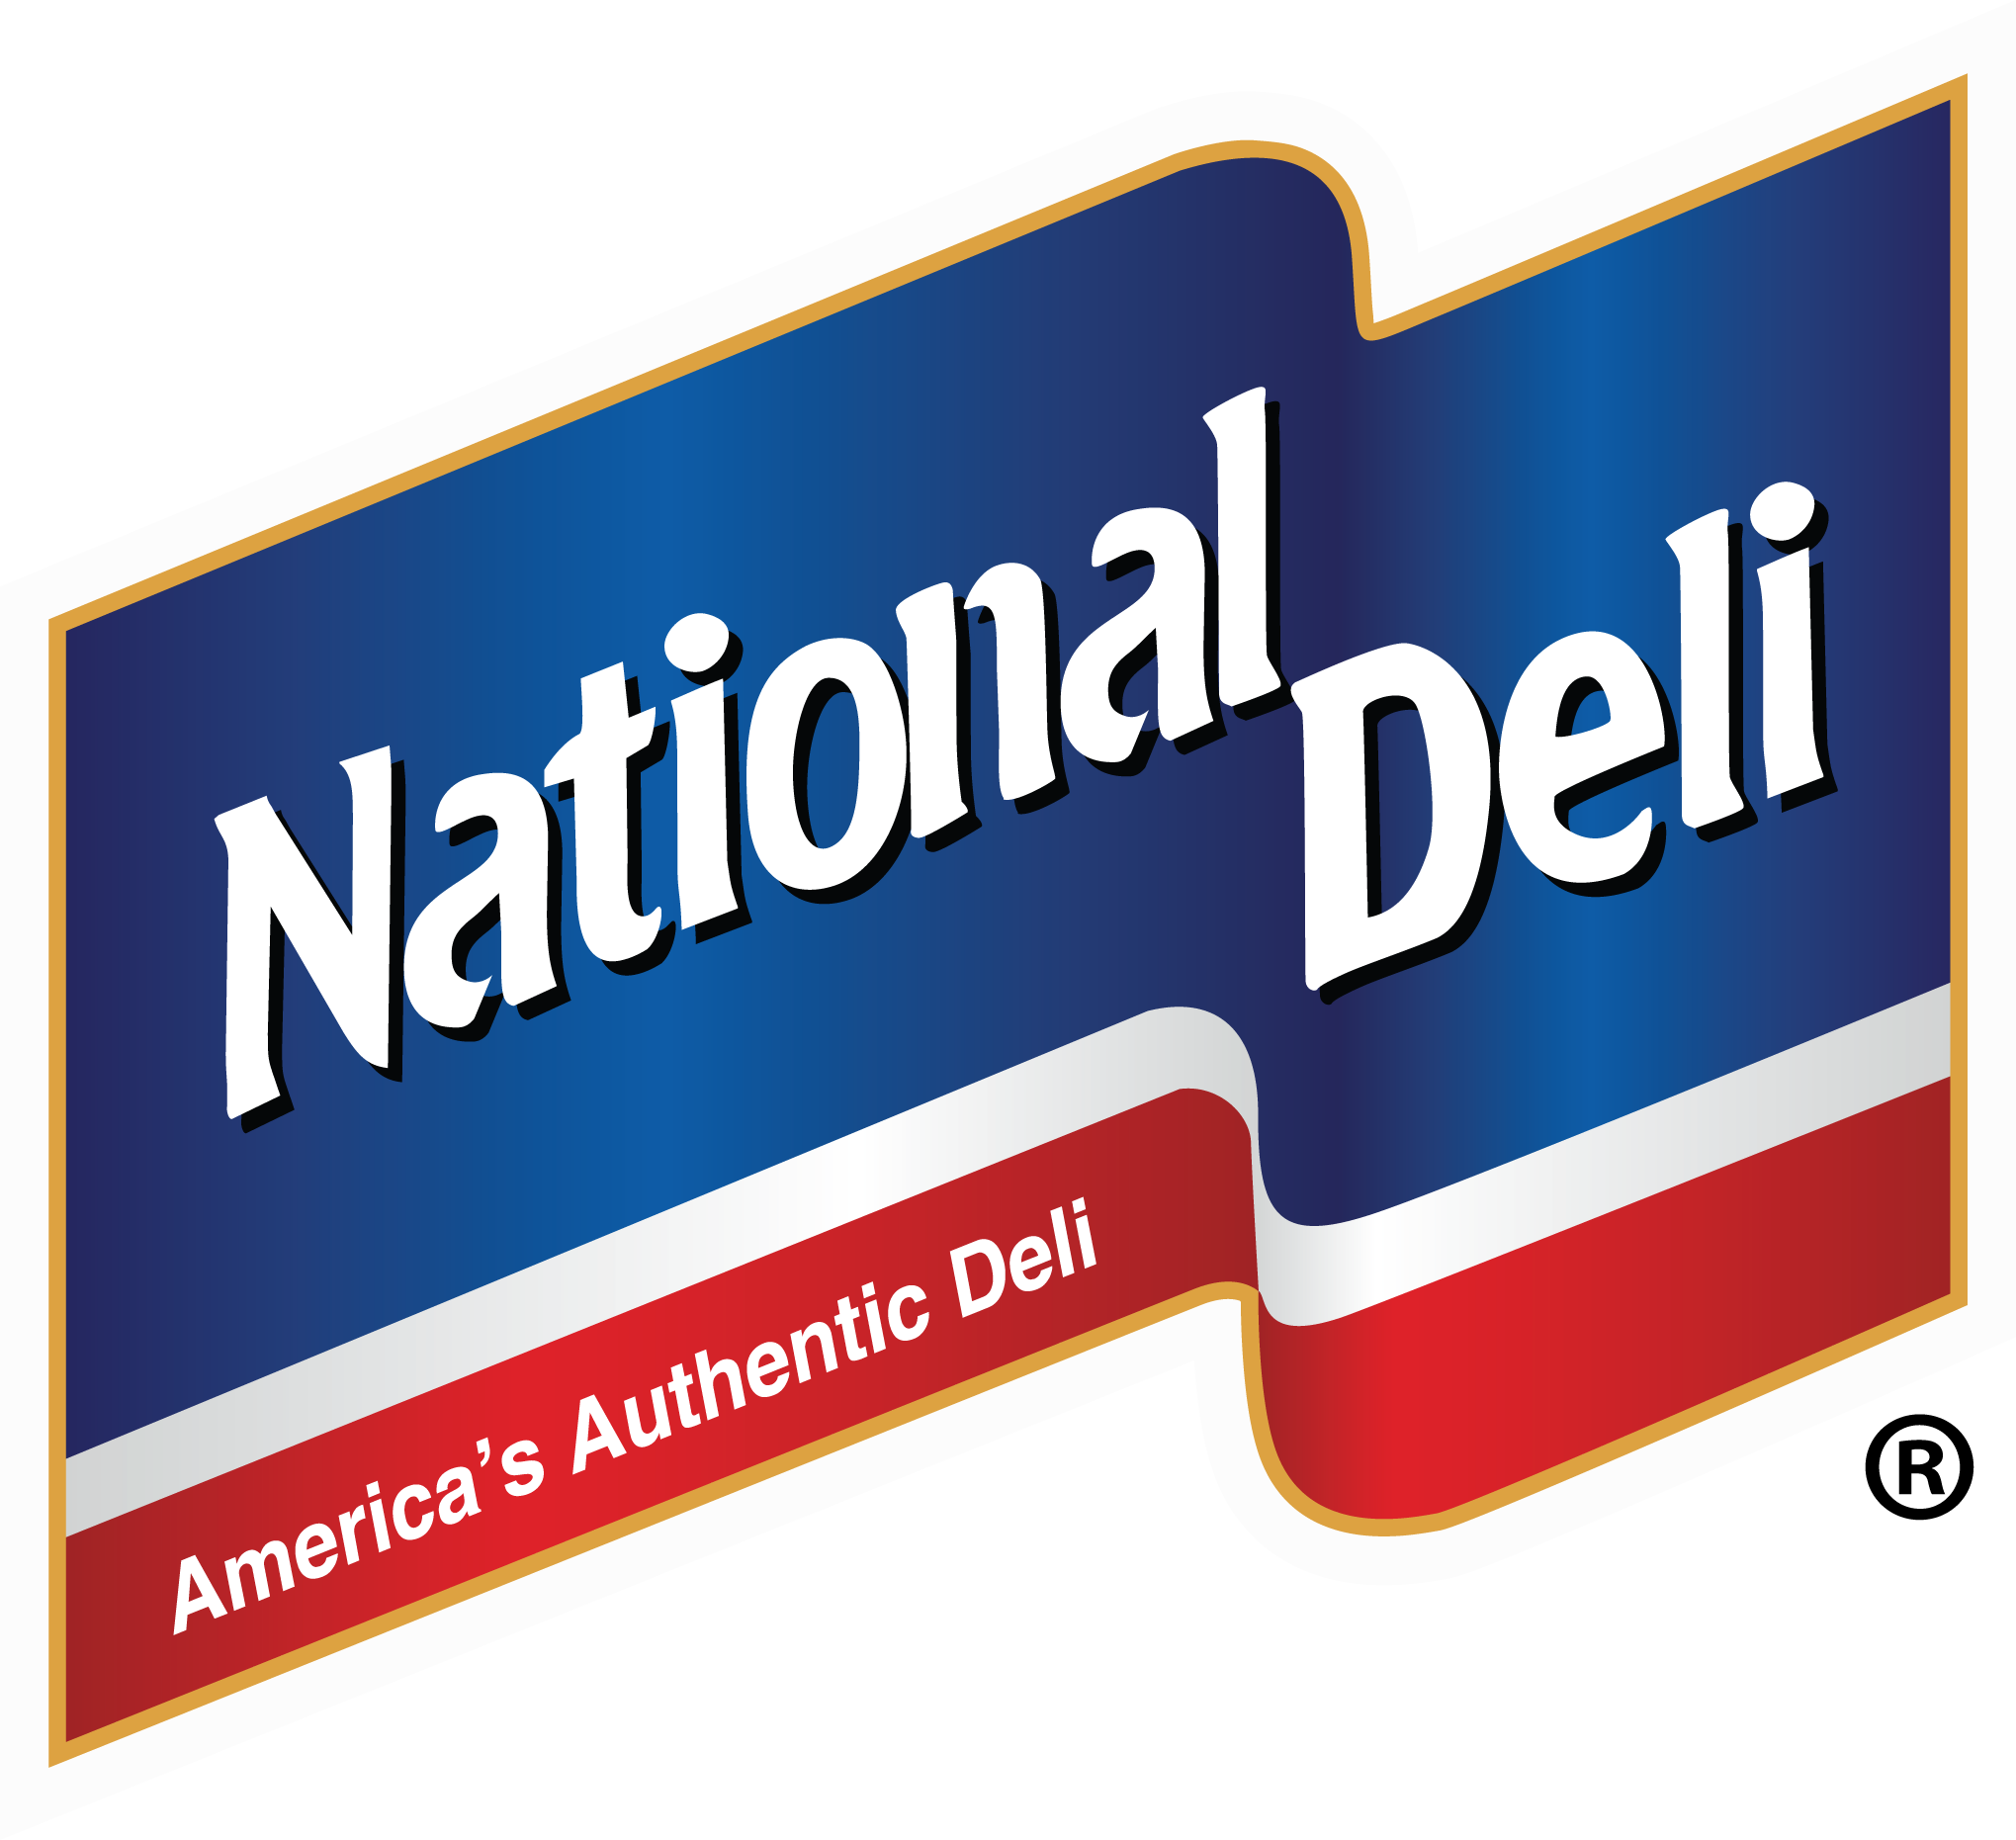 National Deli